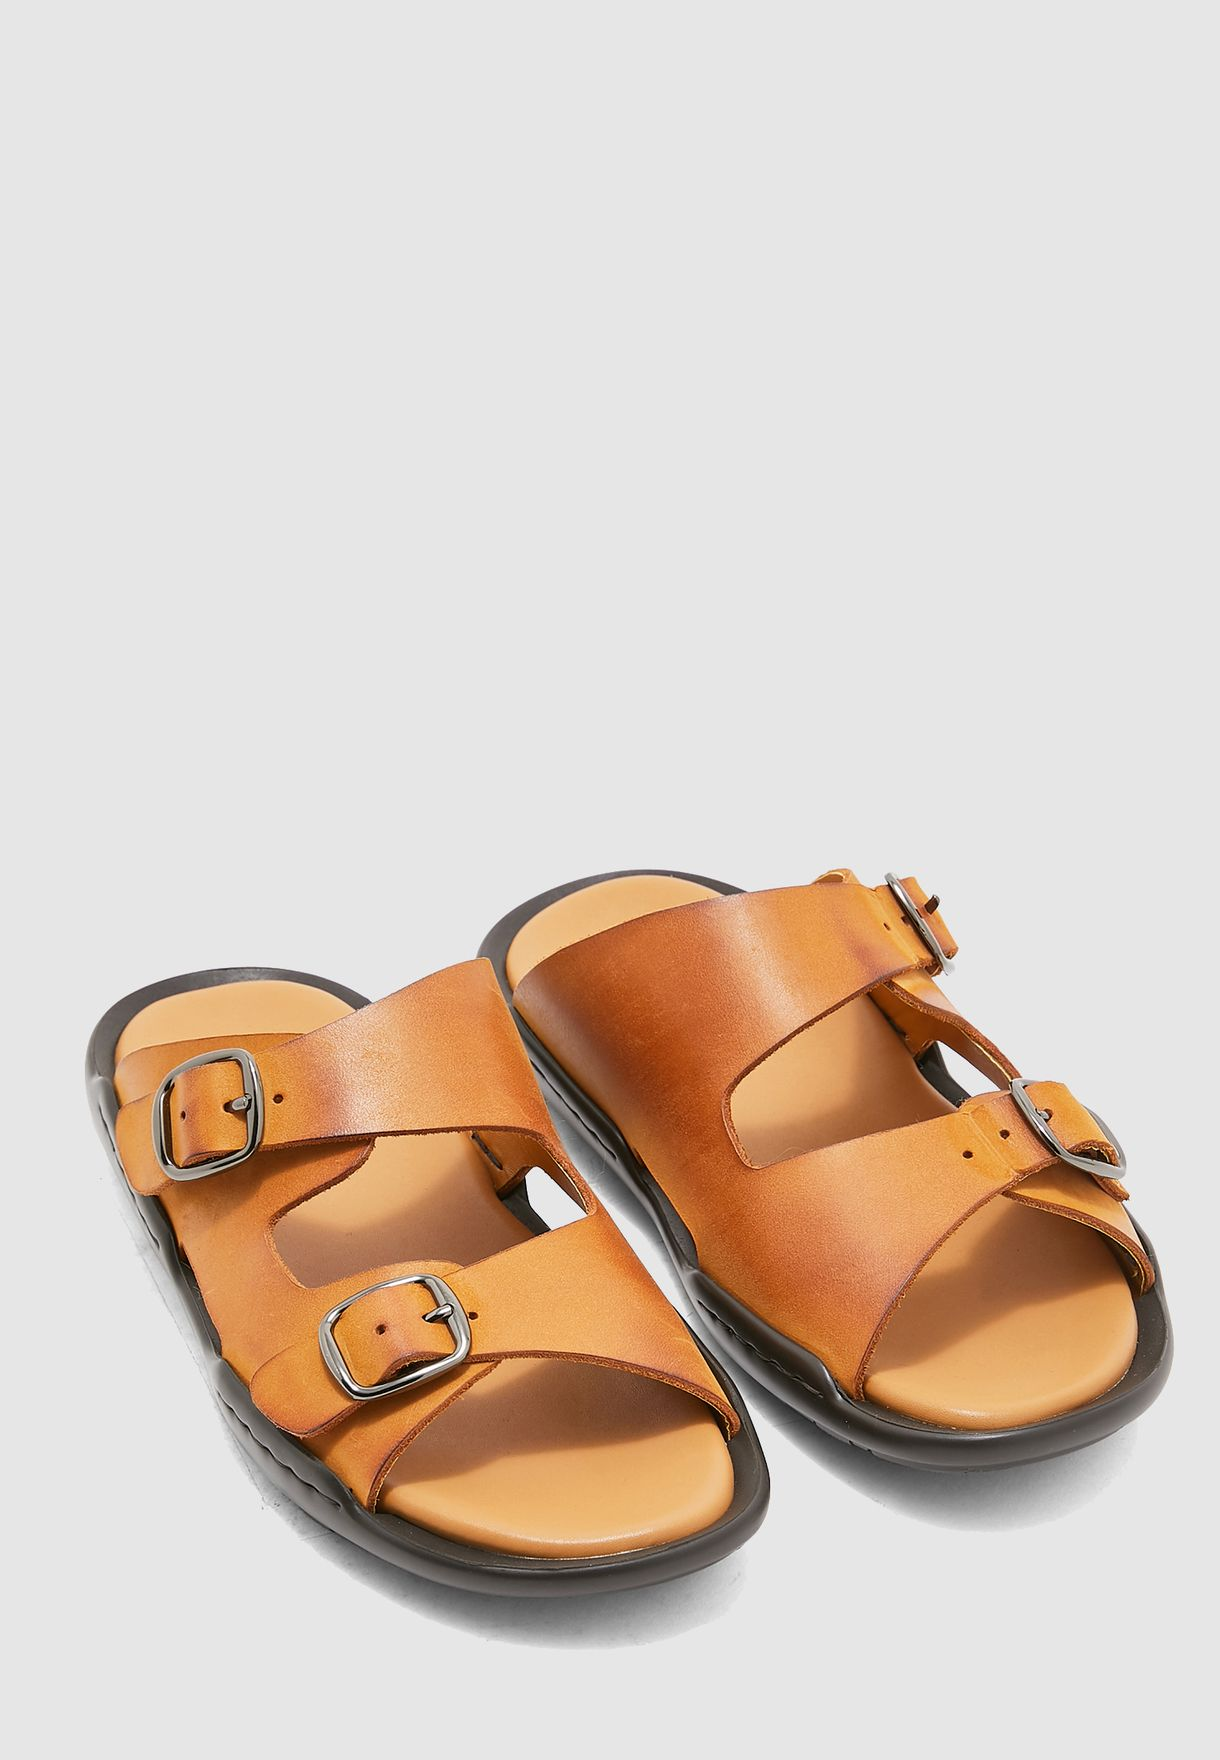 Kitkat Double Strap Sandals